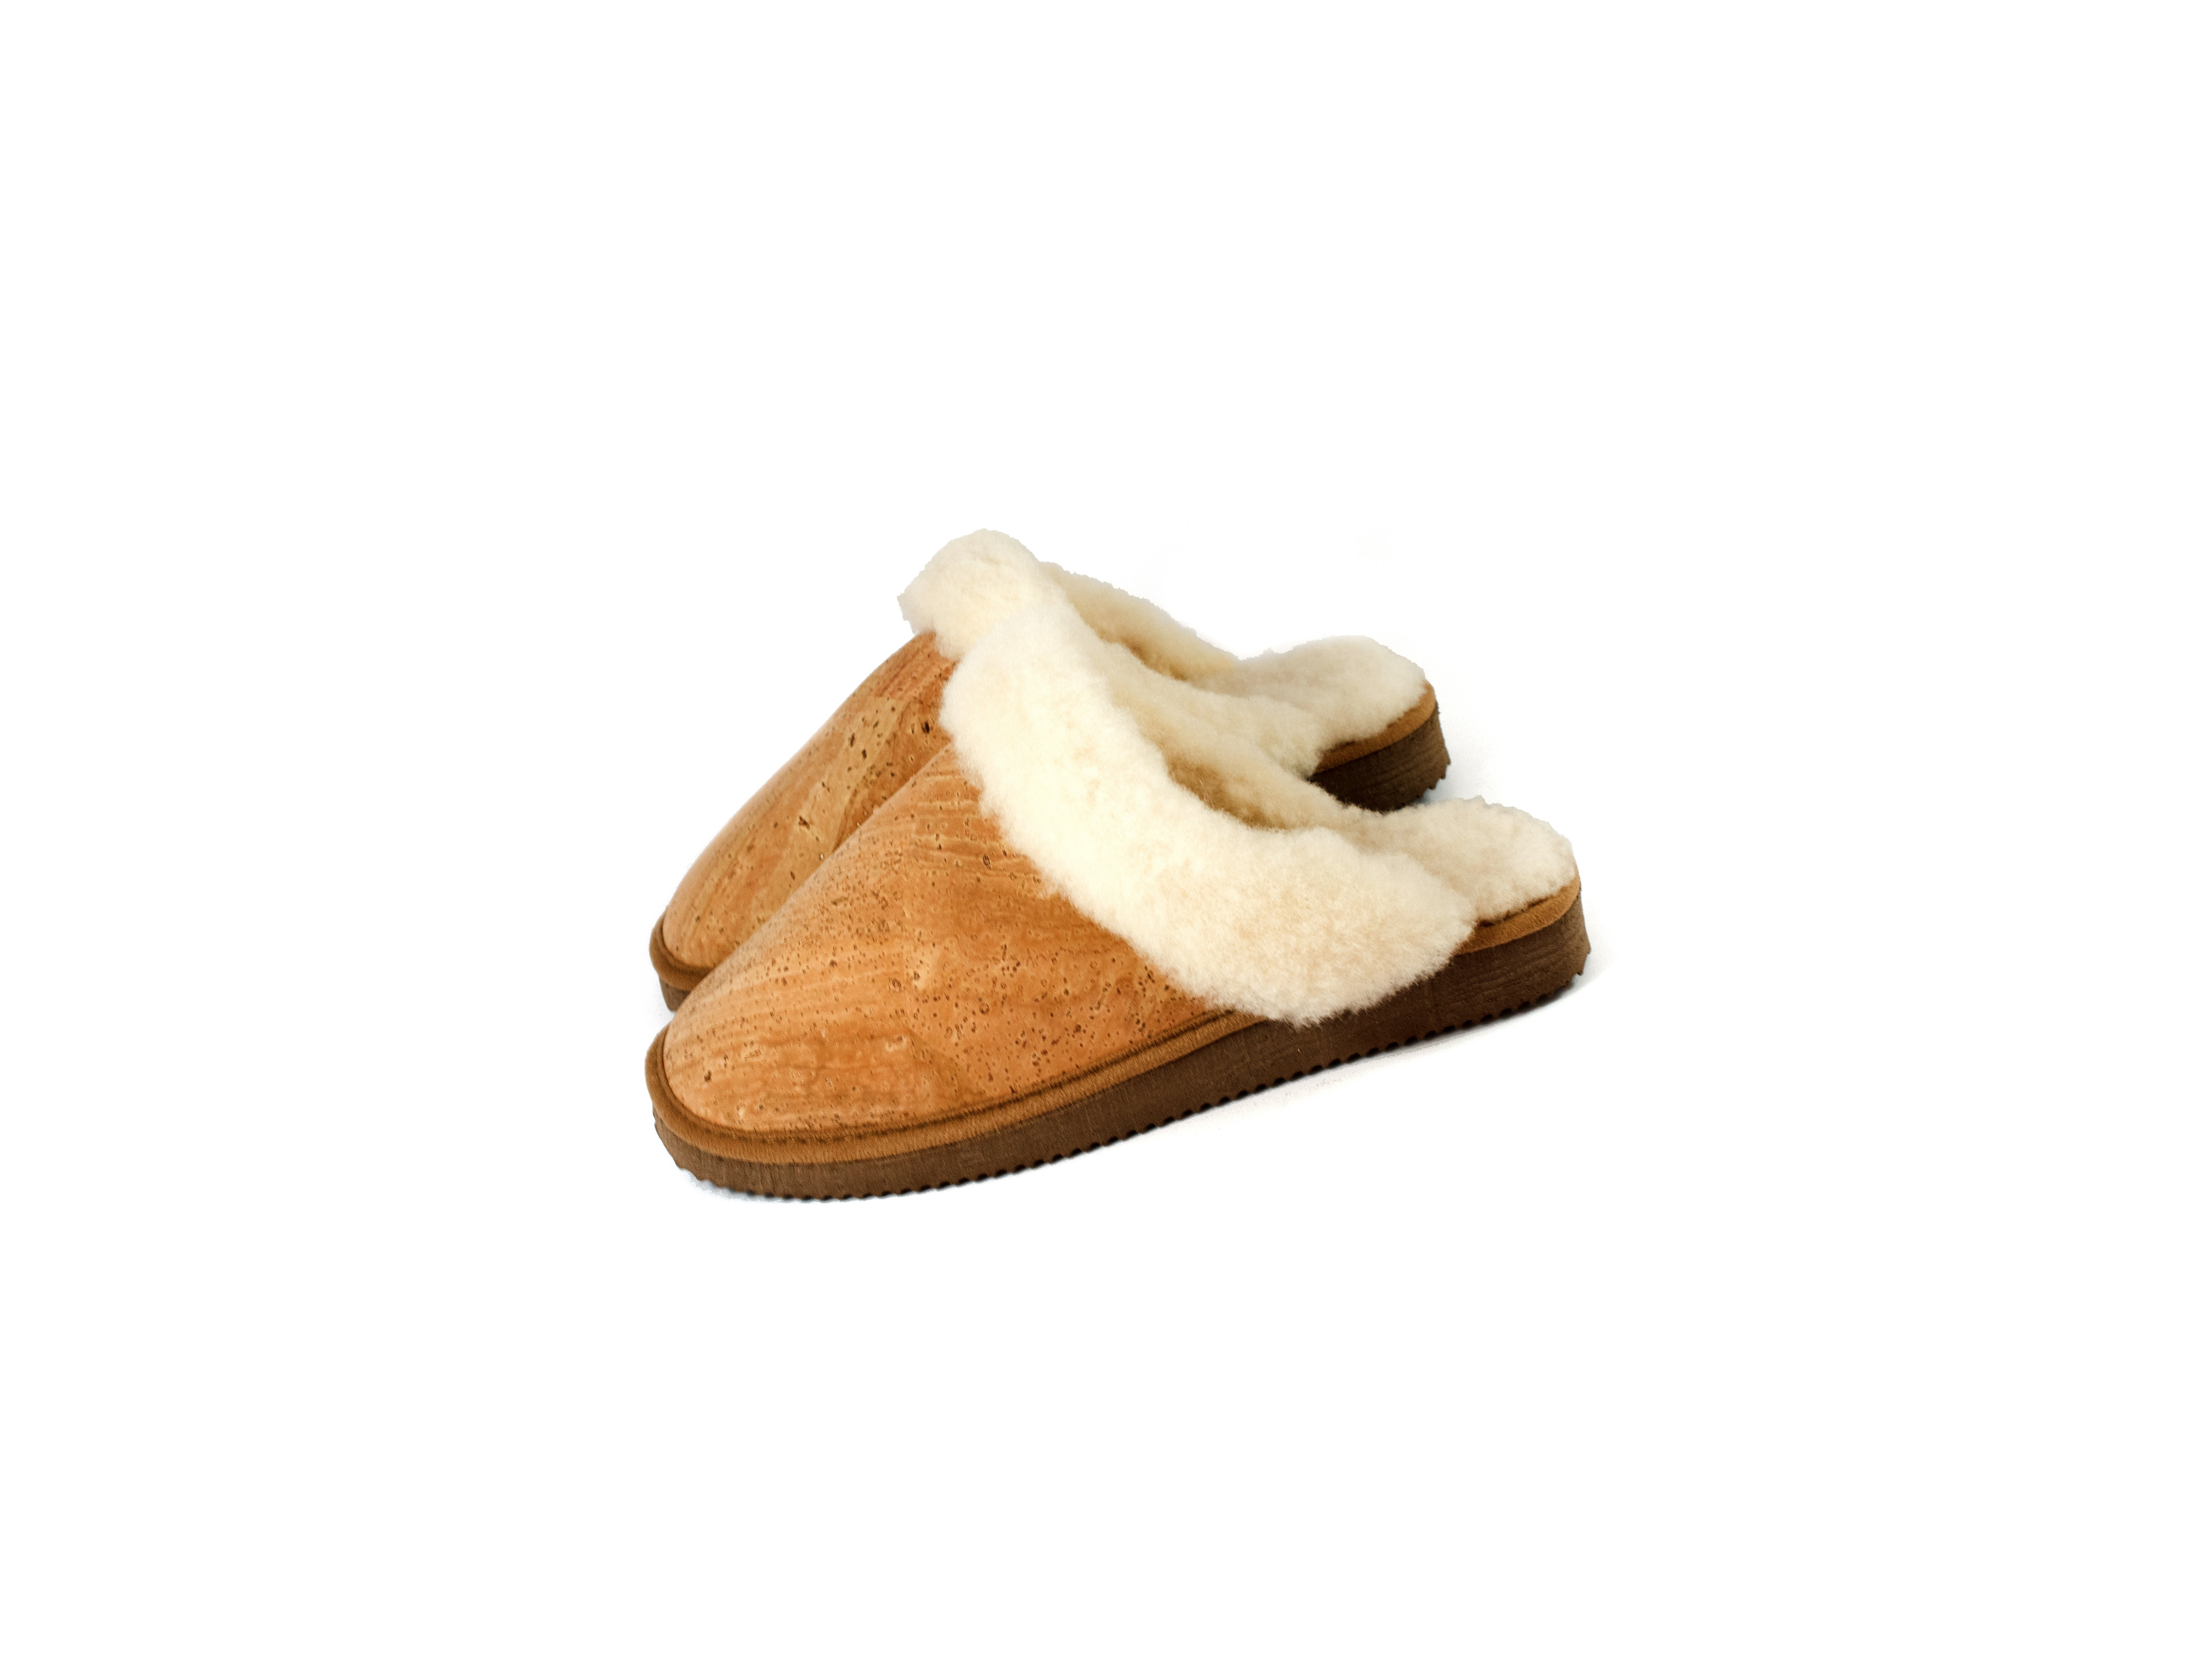 Buy cork slippers. Buy cork slippers in Spain. Buy cork slippers in Portugal. Buy cork slippers in the Canary Islands